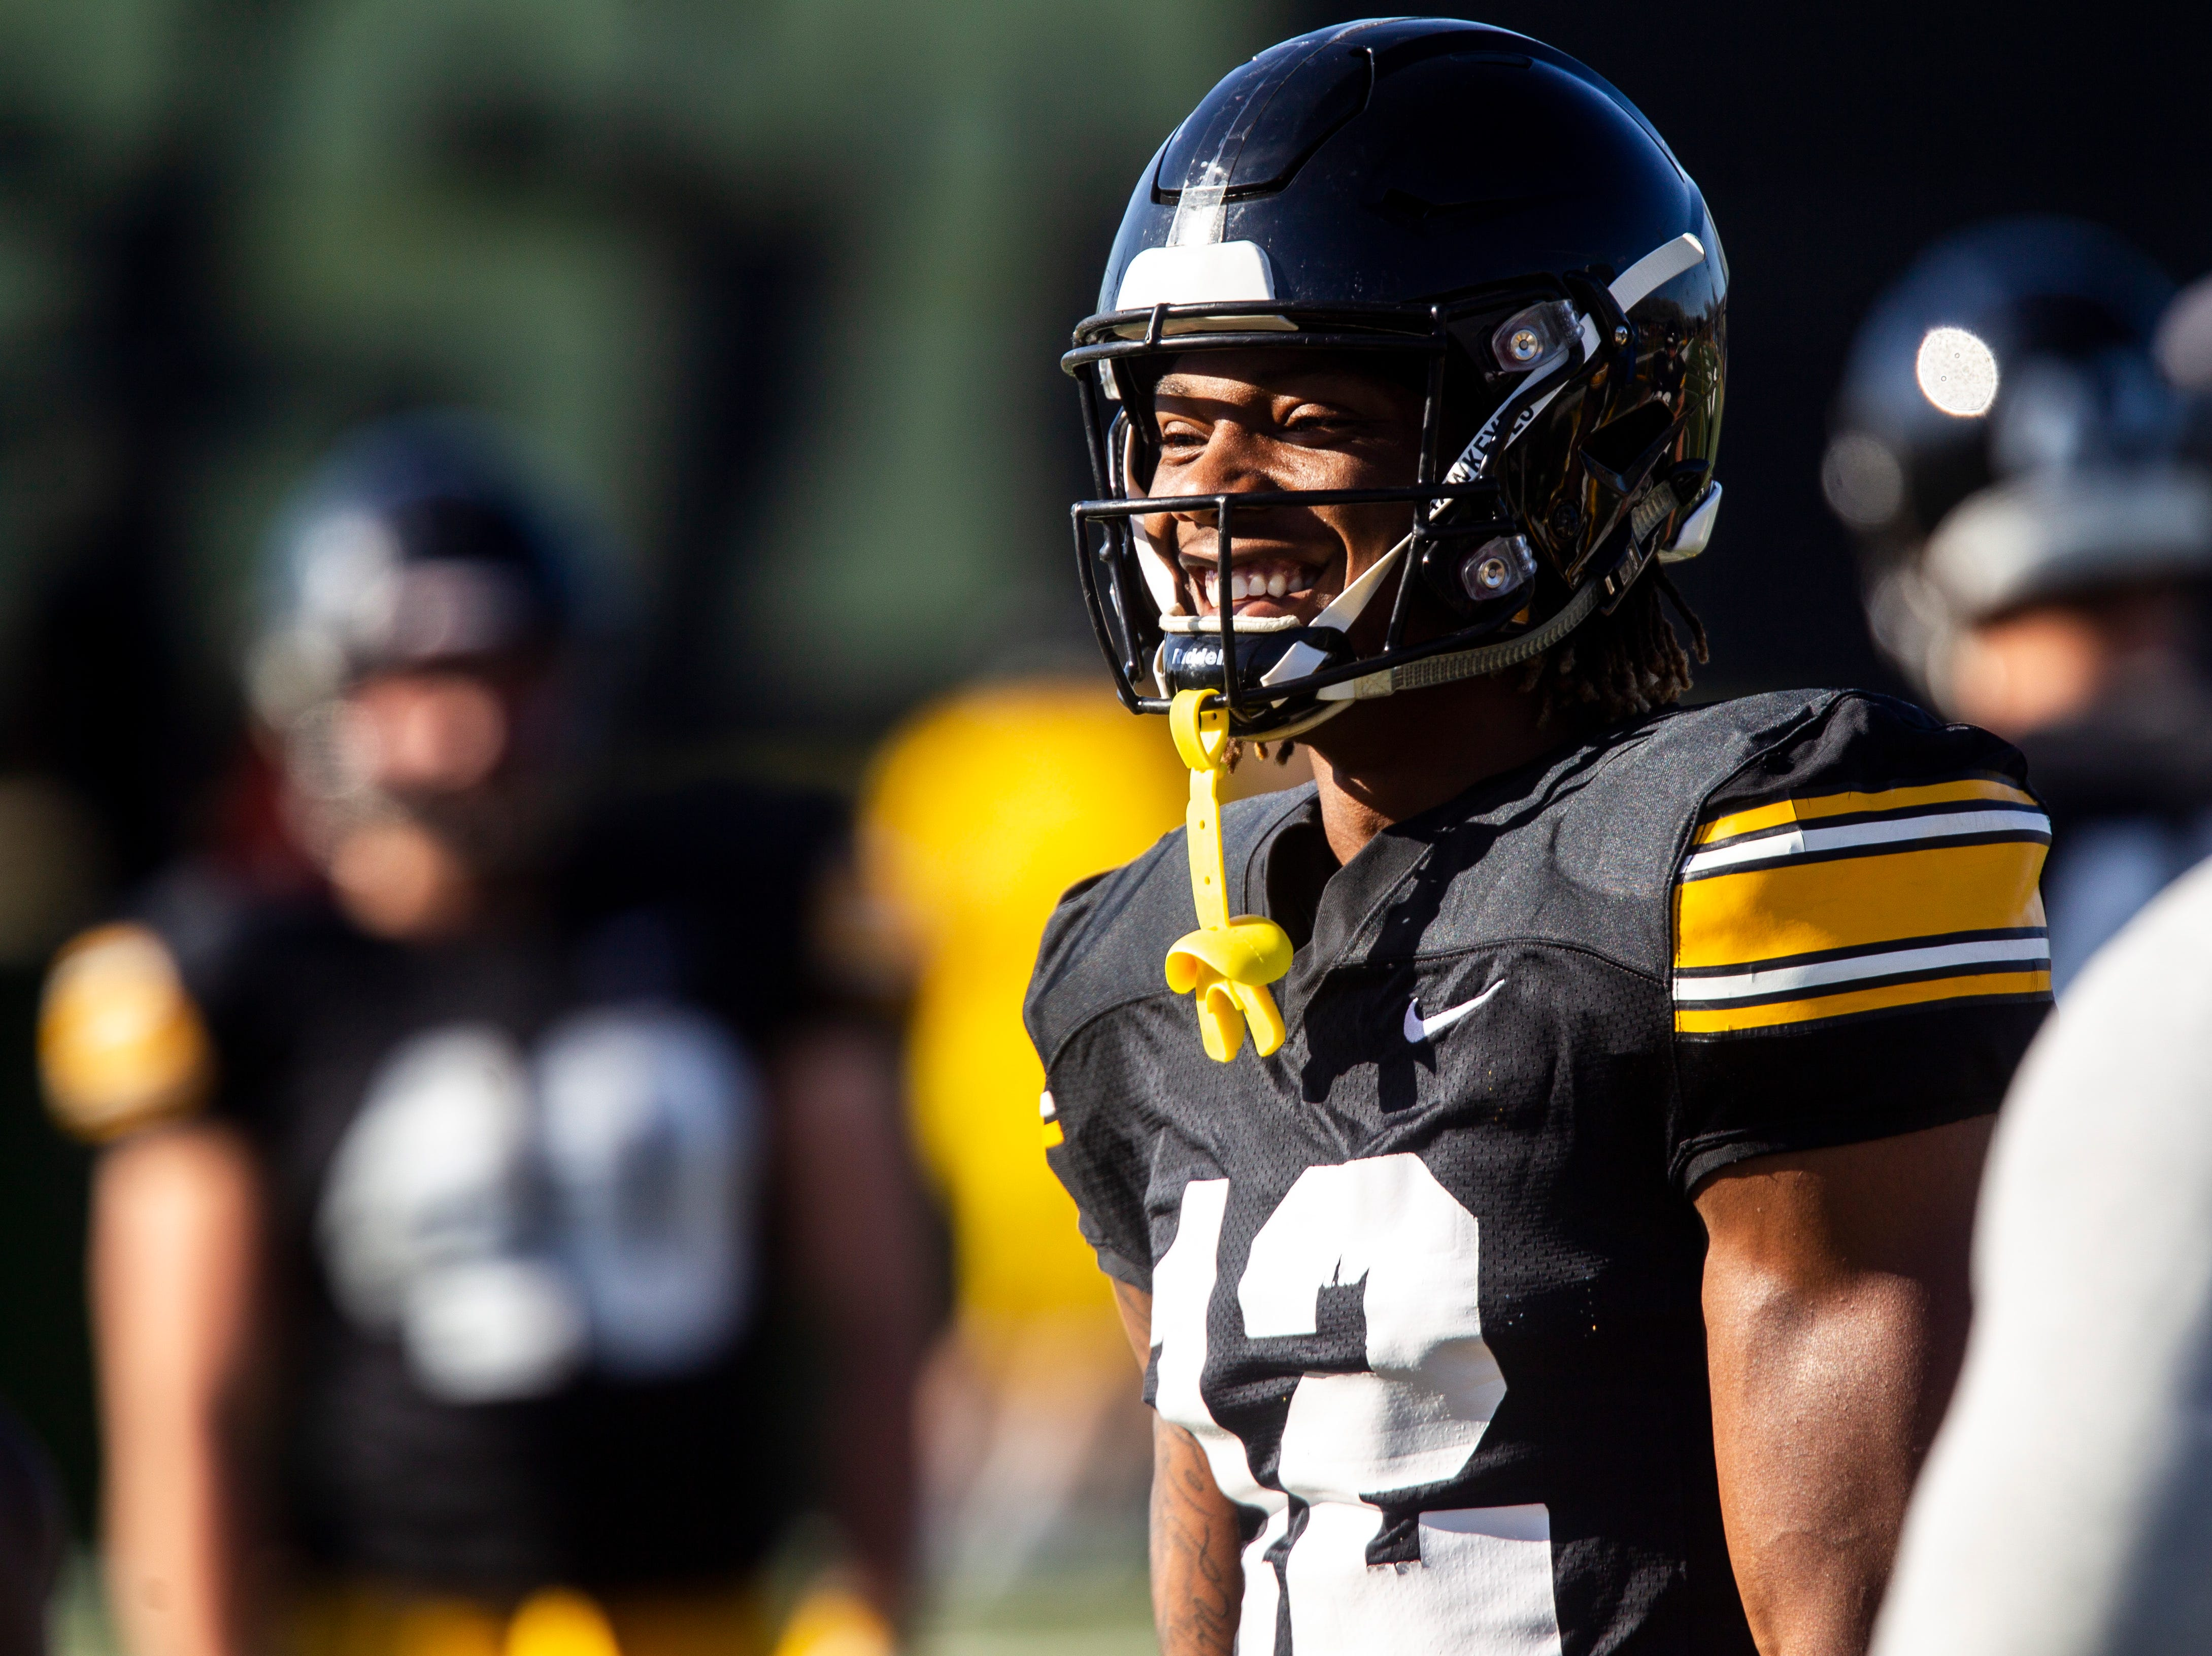 Iowa wide receiver Brandon Smith (12) smiles during the final spring football practice, Friday, April 26, 2019, at the University of Iowa outdoor practice facility in Iowa City, Iowa.